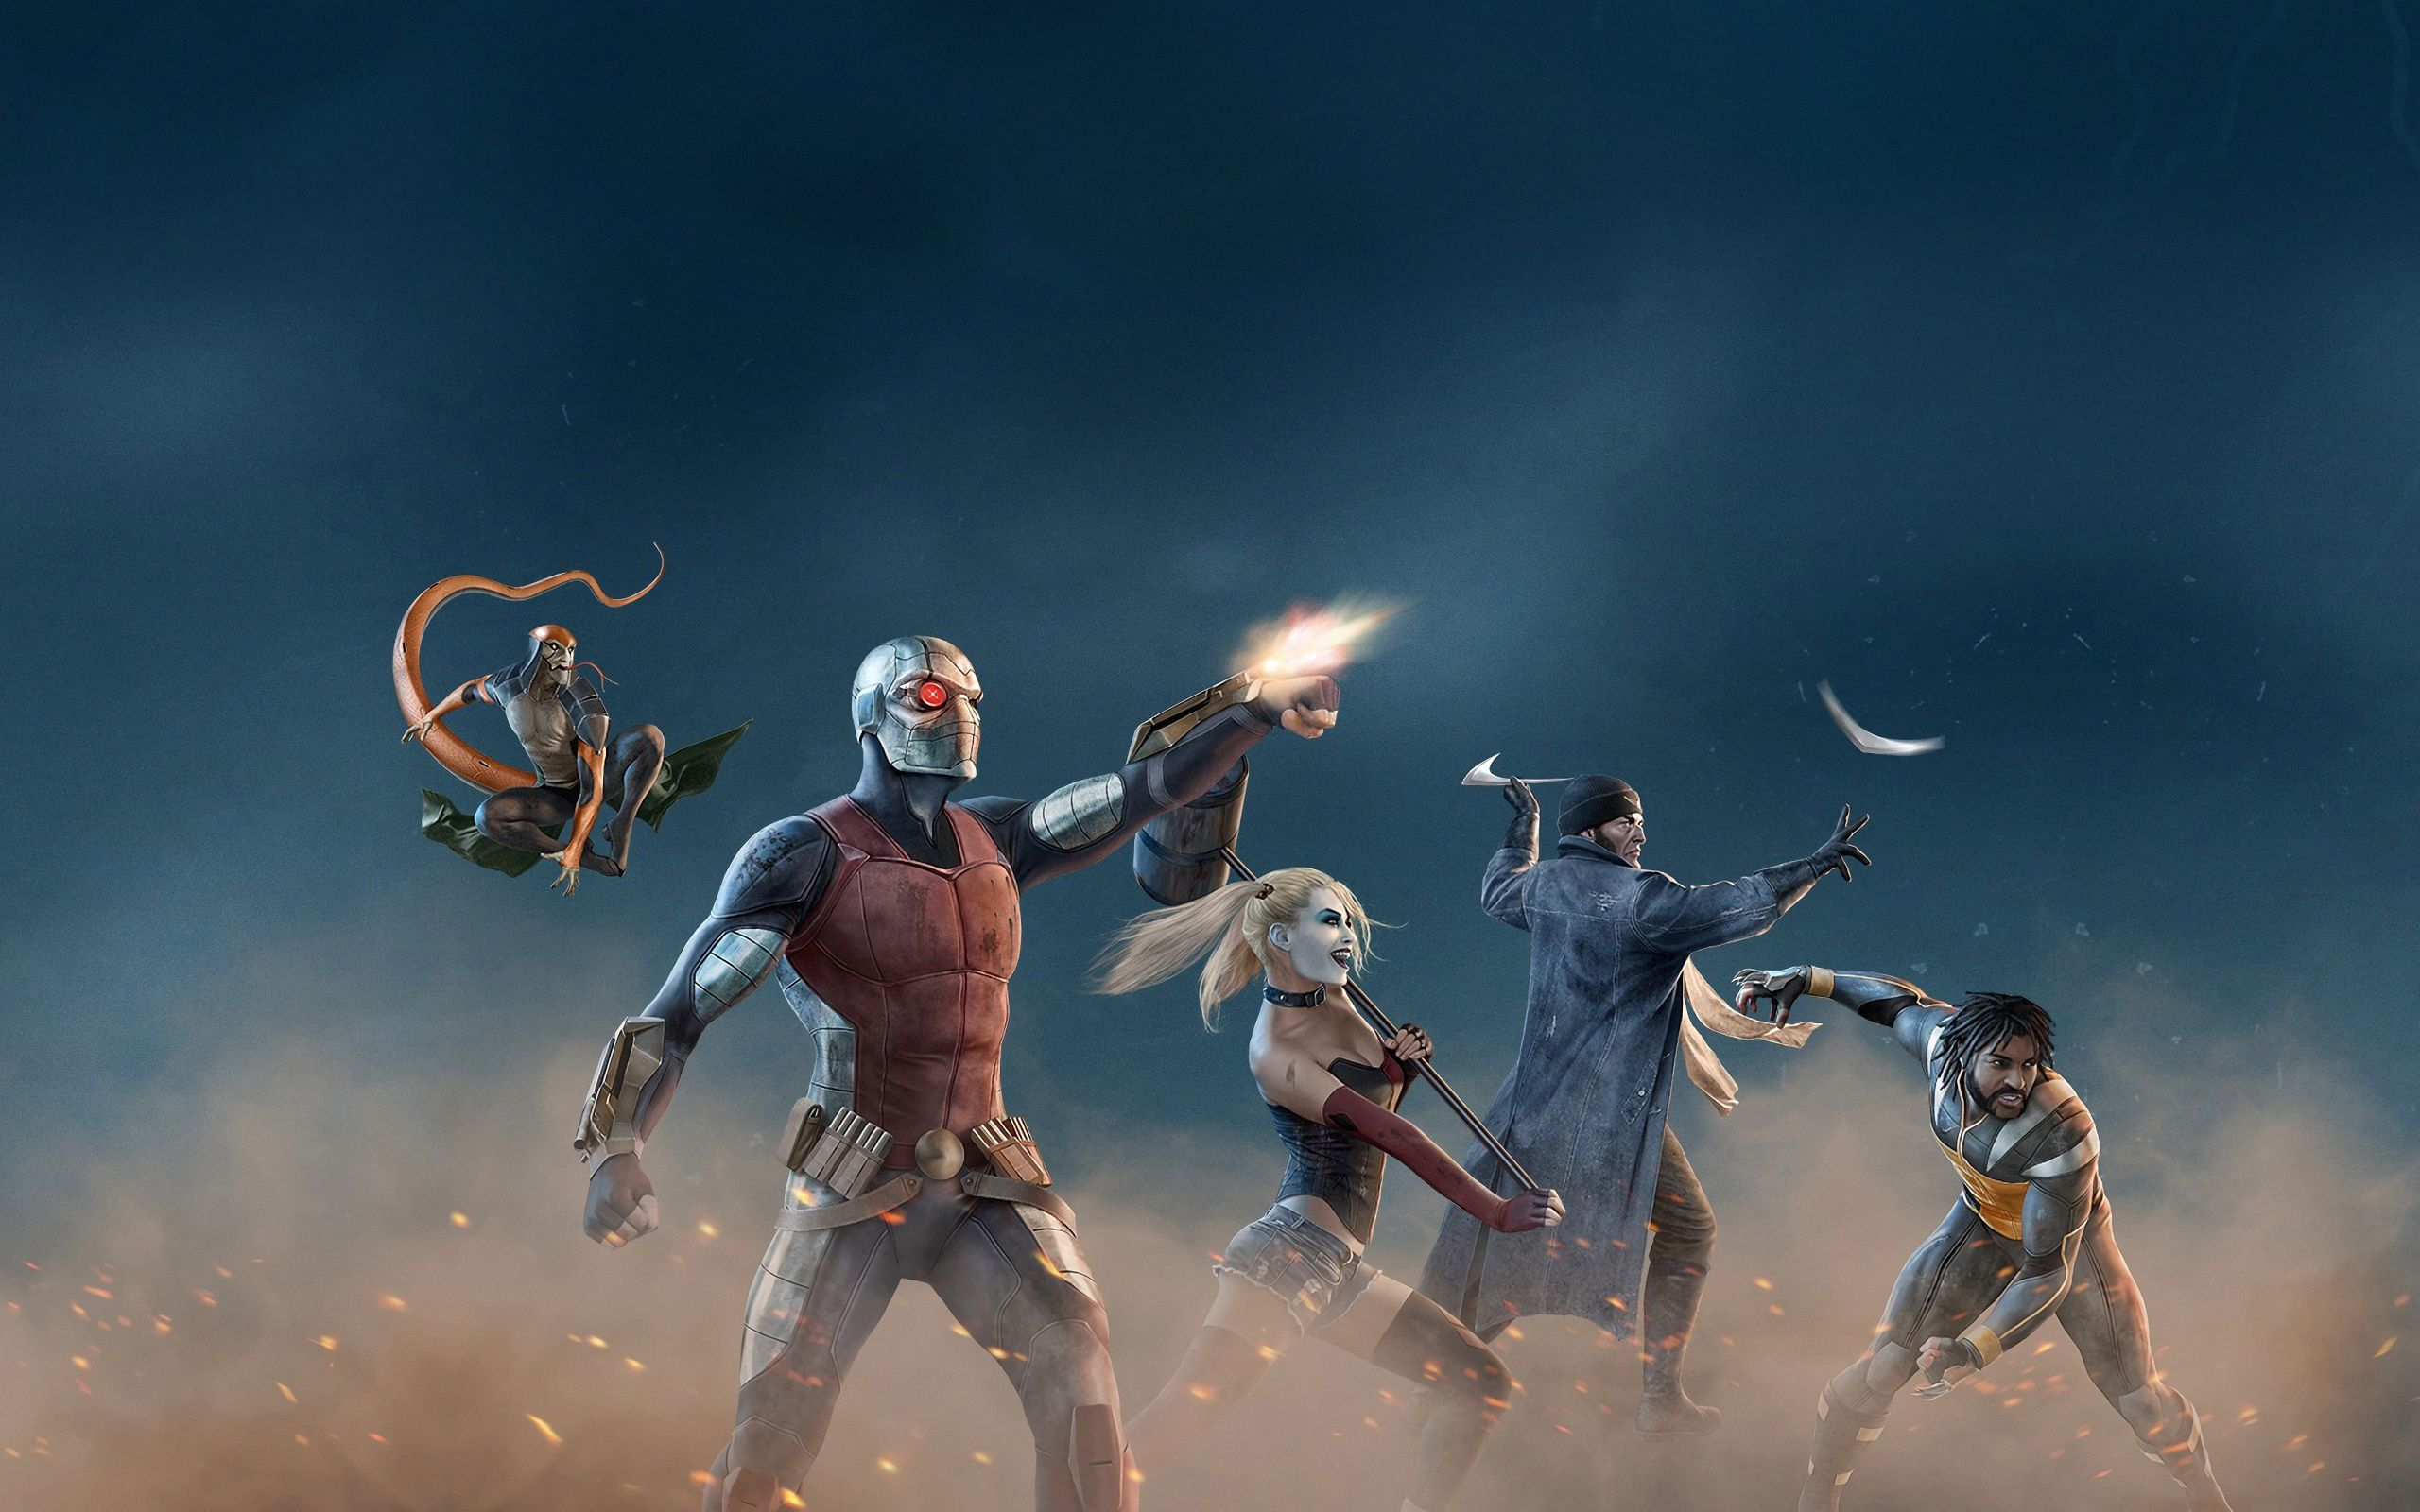 2560x1600 Suicide Squad Hell to Pay 2560x1600 Resolution Wallpapers